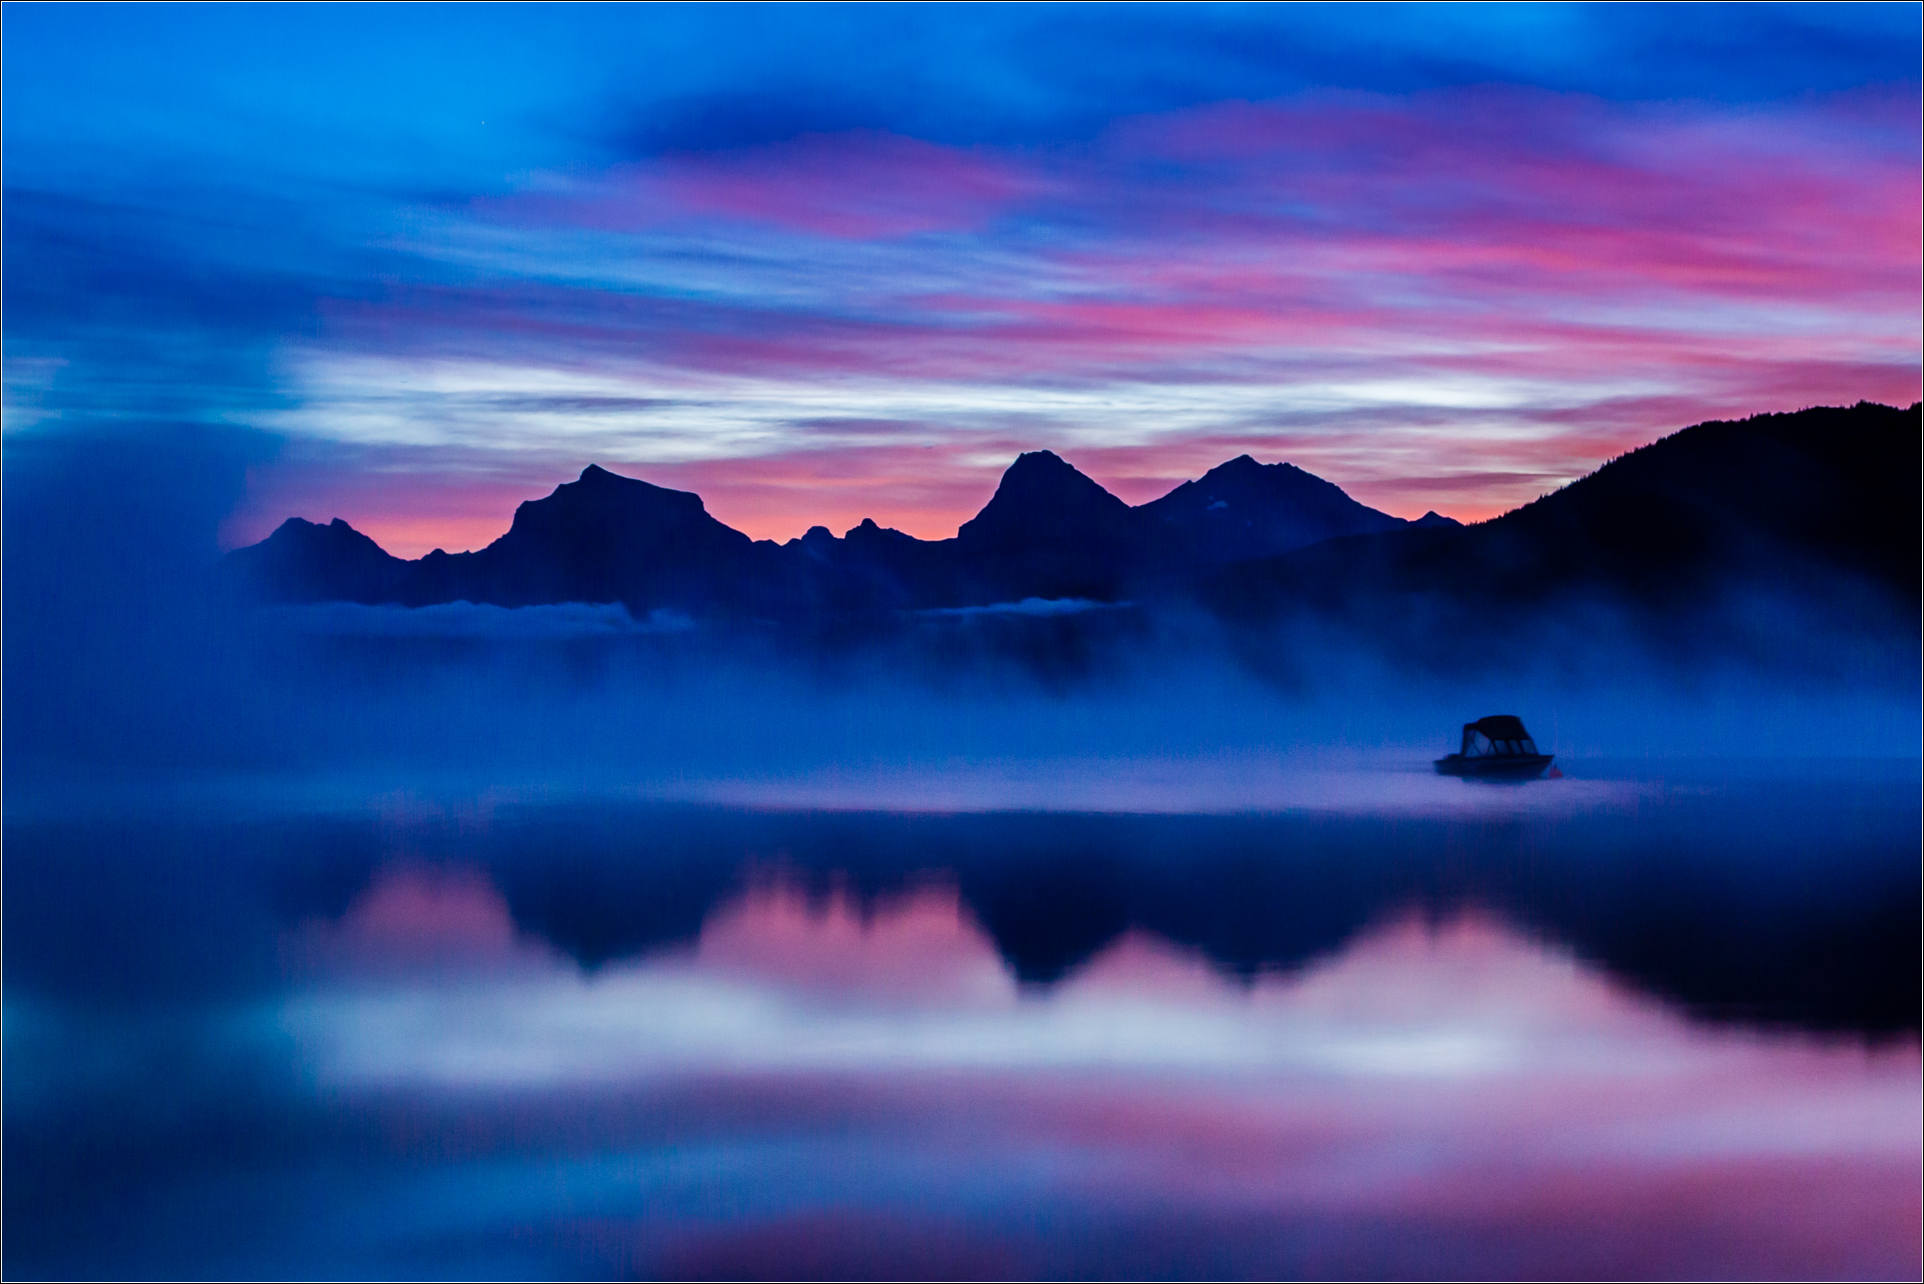 calm on the lake christopher martin photography